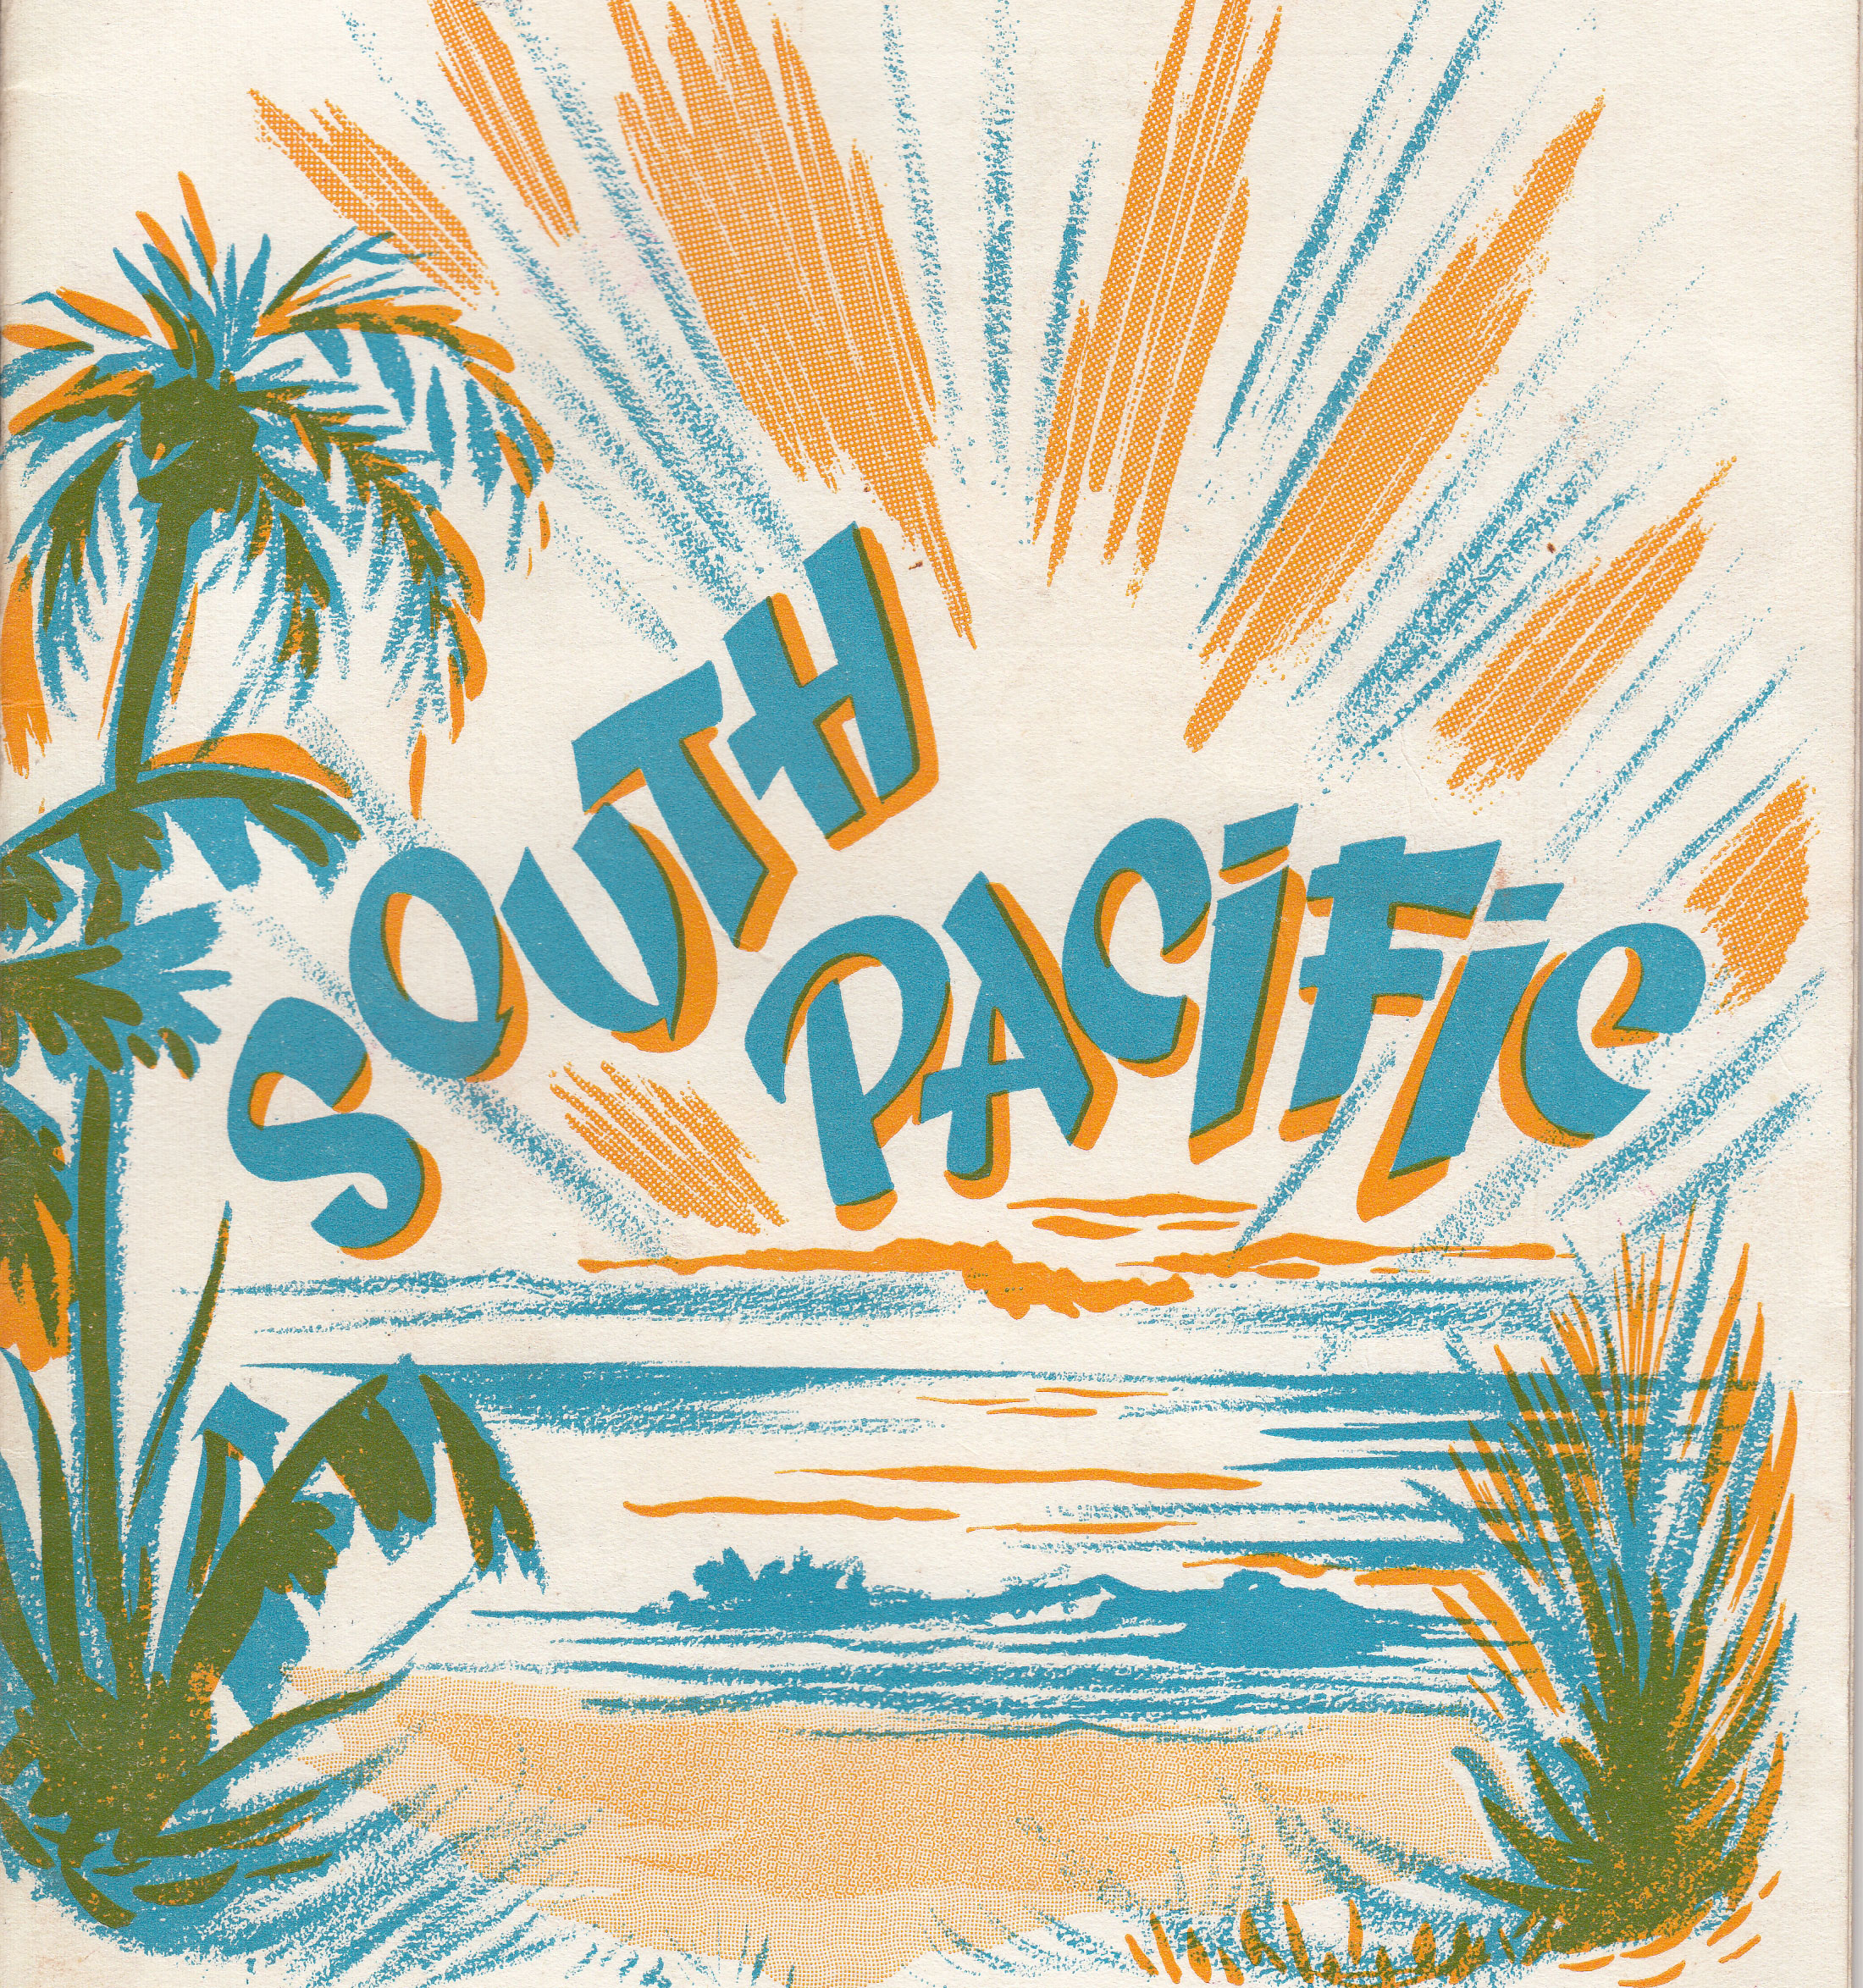 South Pacific (1962)